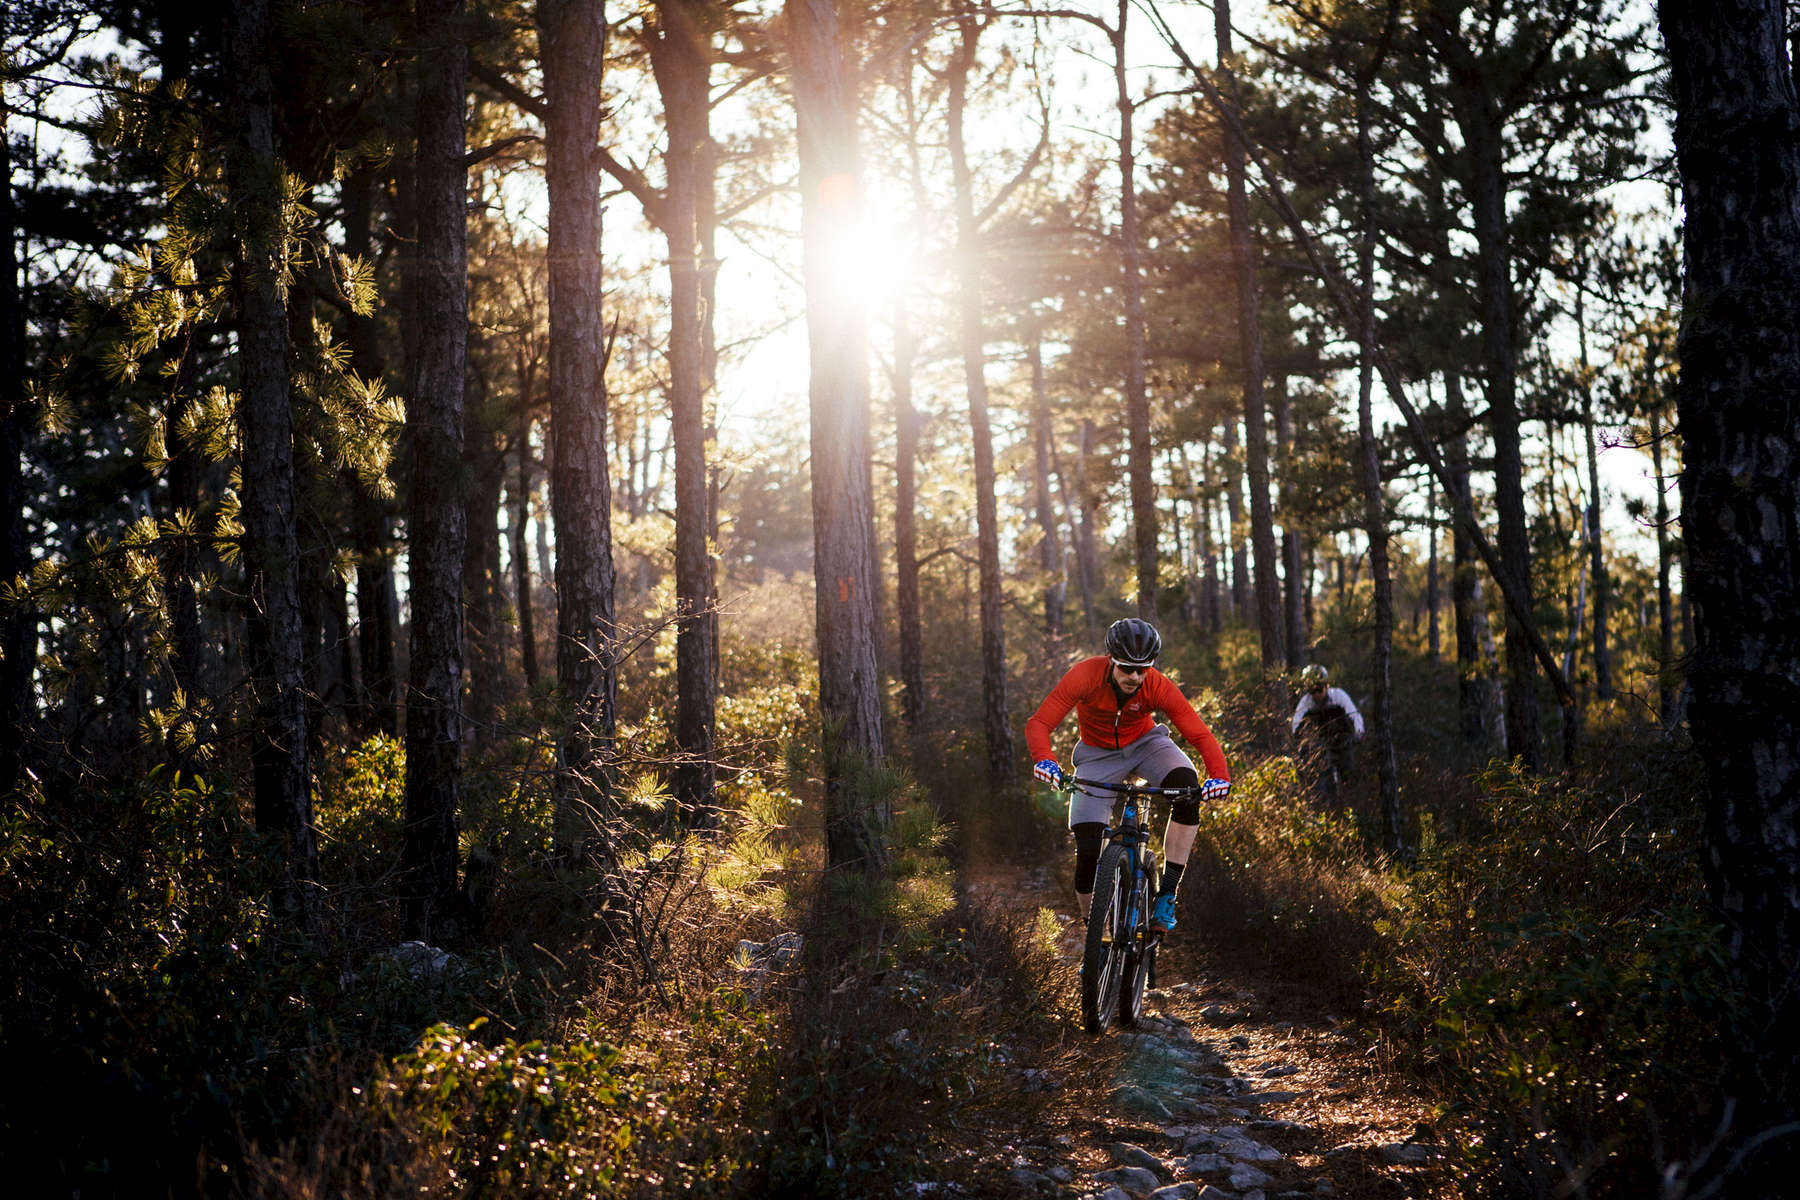 dean-roanoke-virginia-photographer-director-mountain-biking-roanoke-3